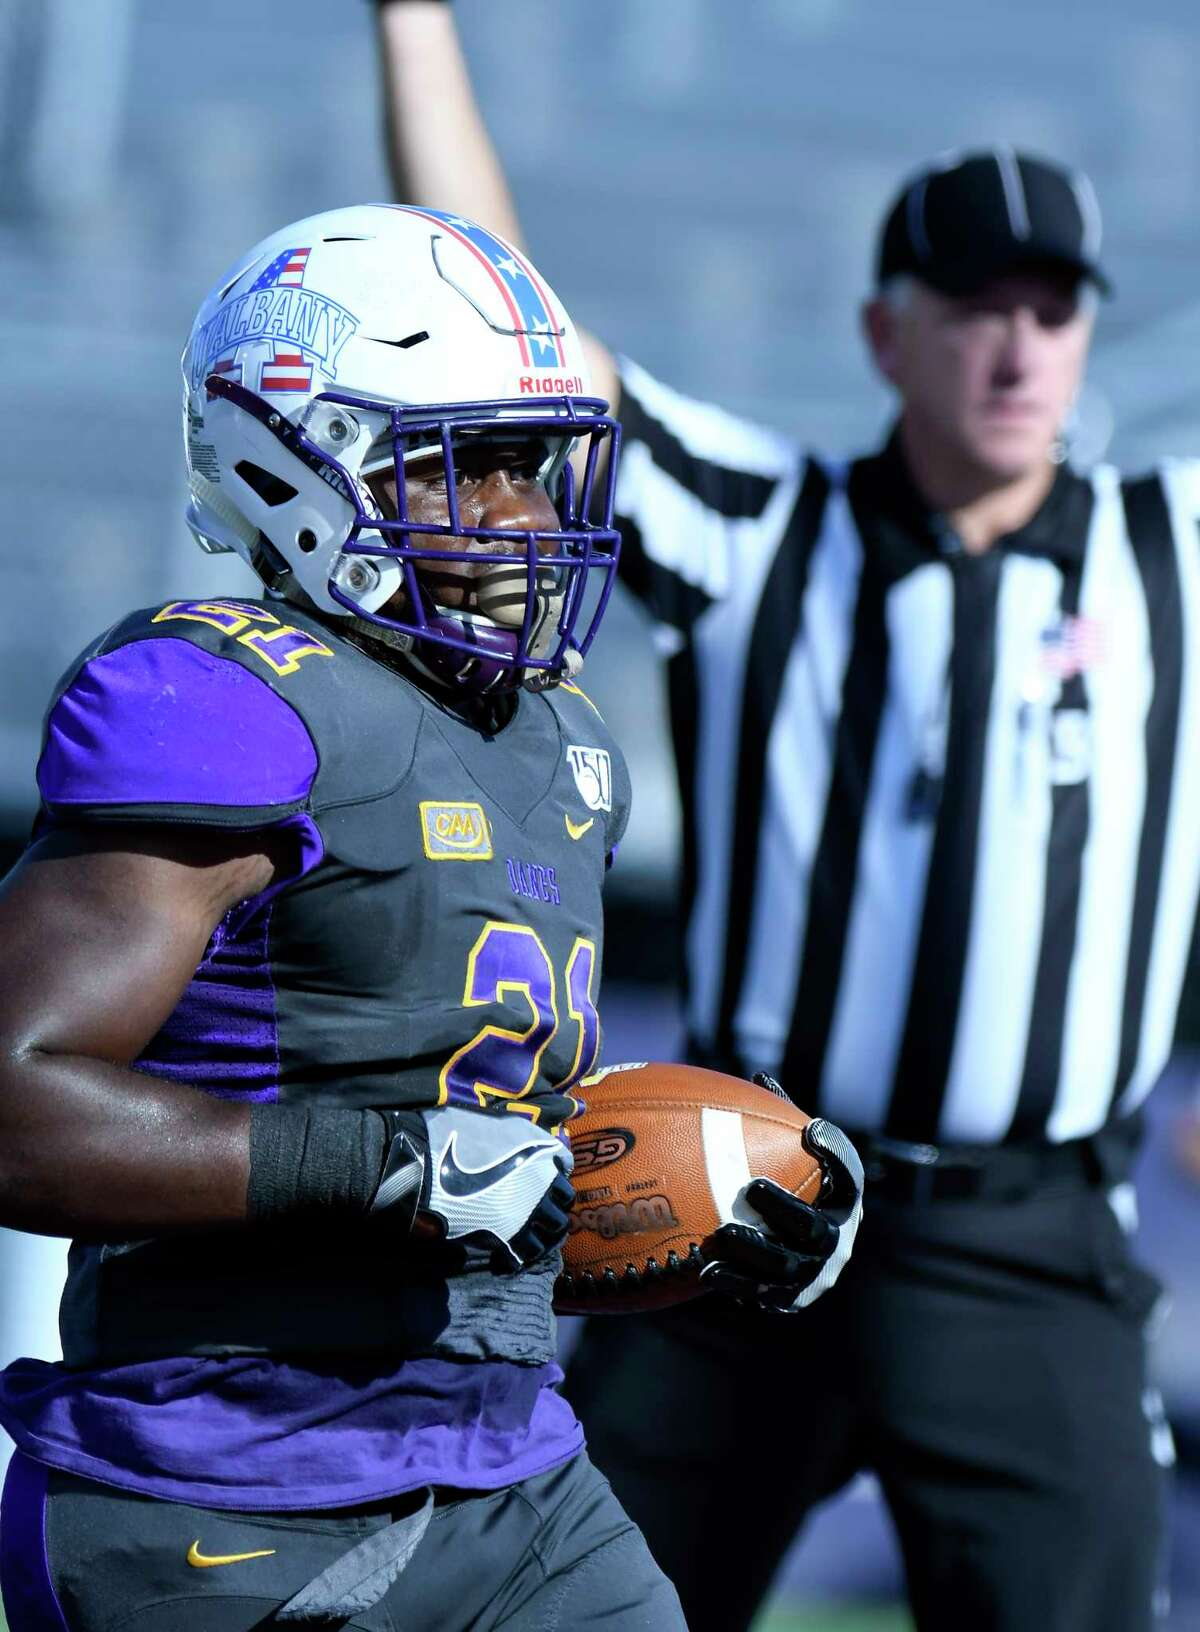 University at Albany running back Karl Mofor (21) scores a touchdown against Lafayette during the first half of an NCAA college football game Saturday, Sept. 21, 2019, in Albany, N.Y. (Hans Pennink / Special to the Times Union)